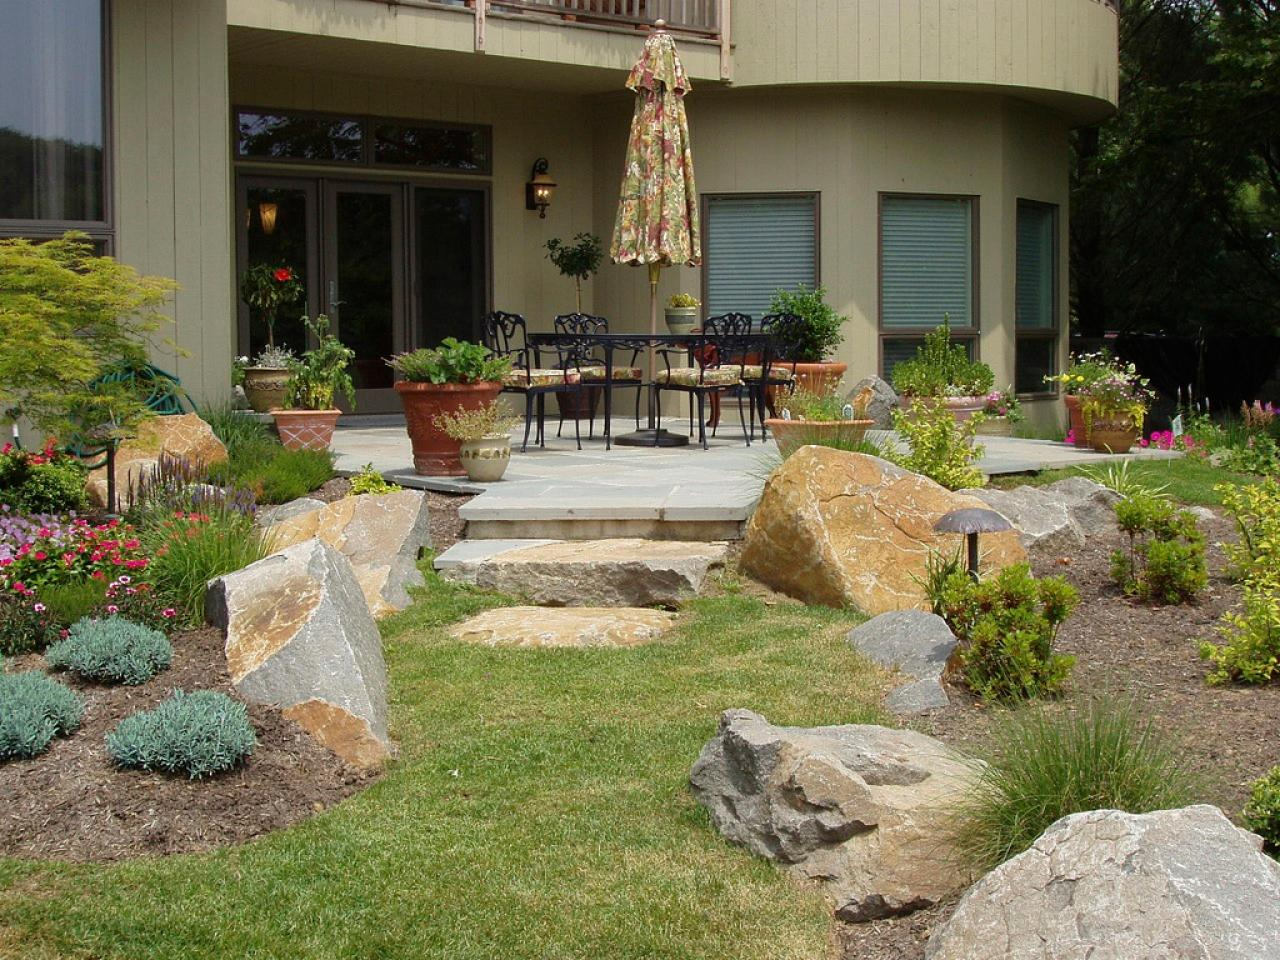 Patio landscaping ideas hgtv for Landscape design ideas